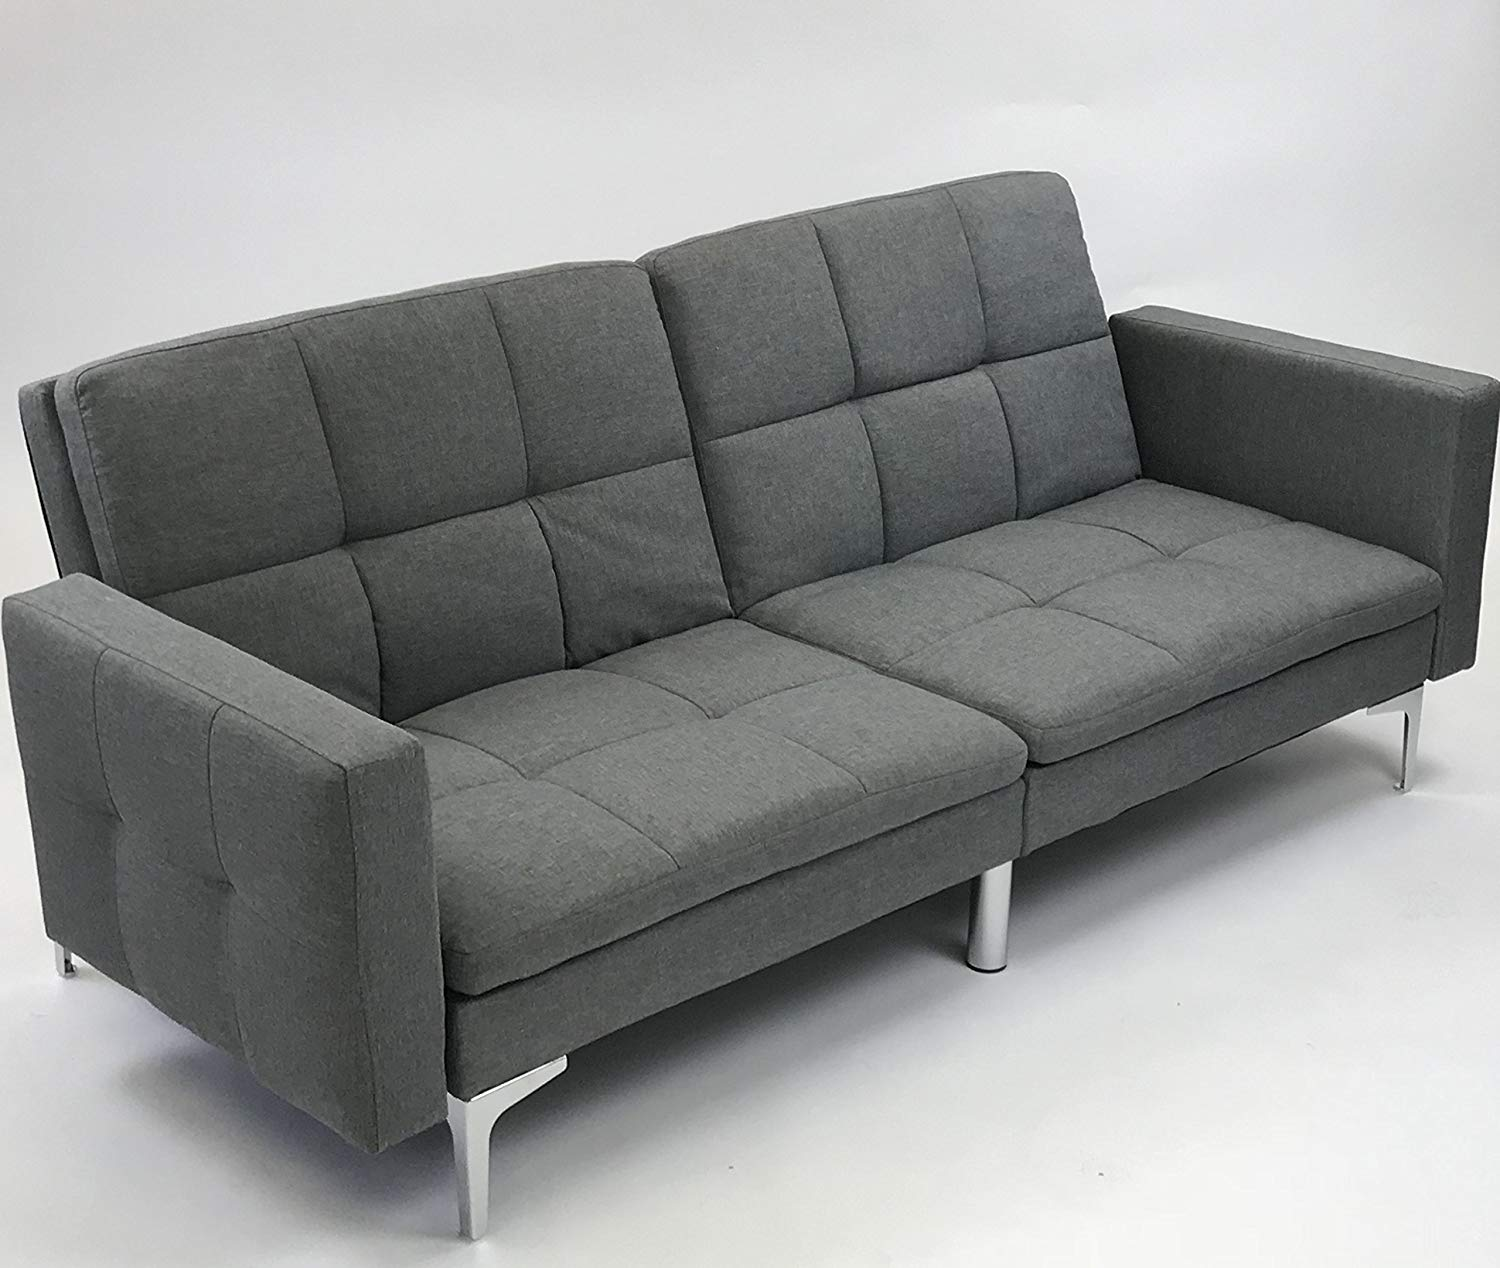 living room furniture ping for clothing shoes jewelry winsome daniel accent table with drawer black finish viscologic clarke split back convertible futon sofa love seat wood iron